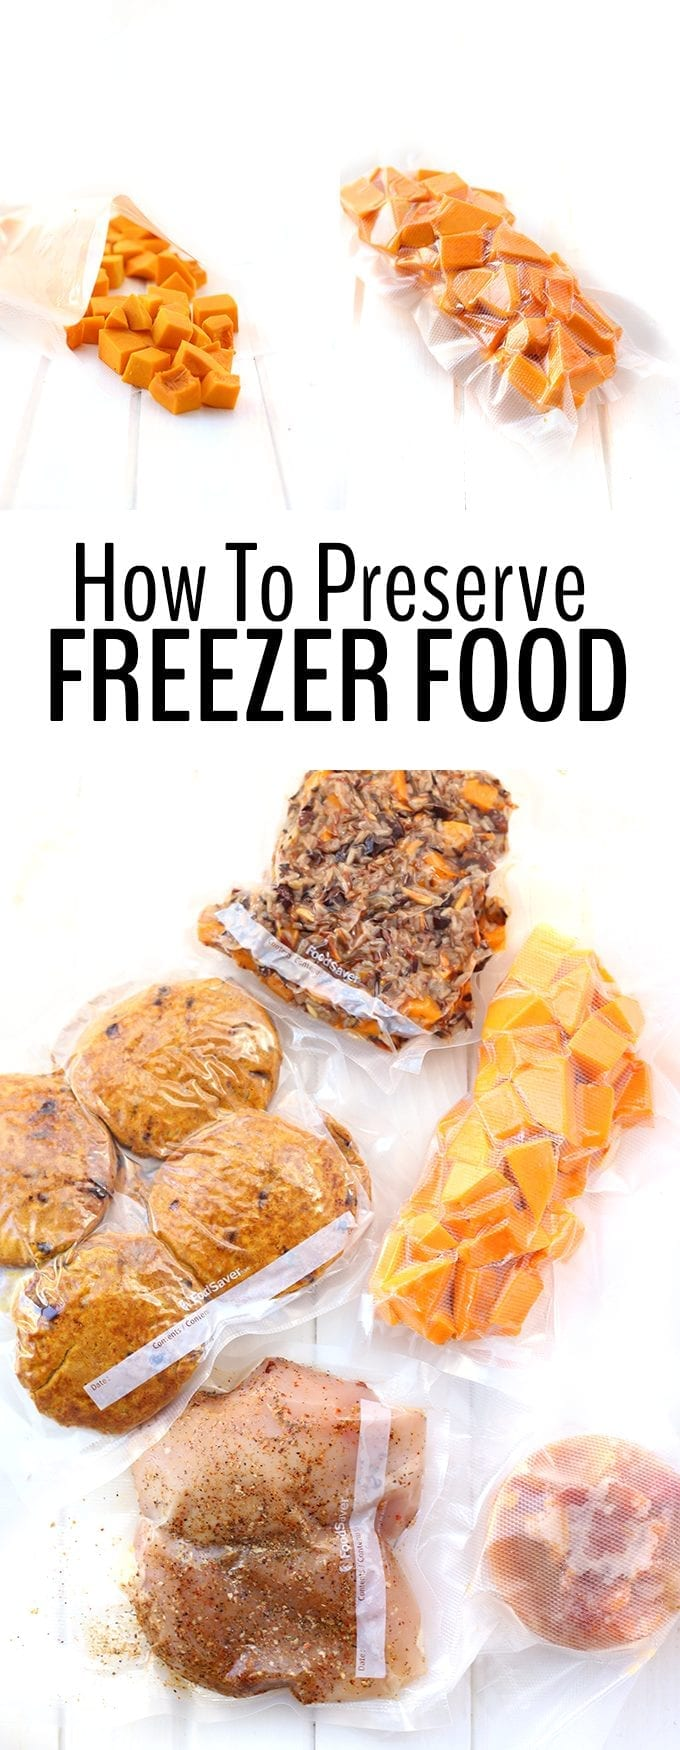 How To Preserve Food In The Freezer.